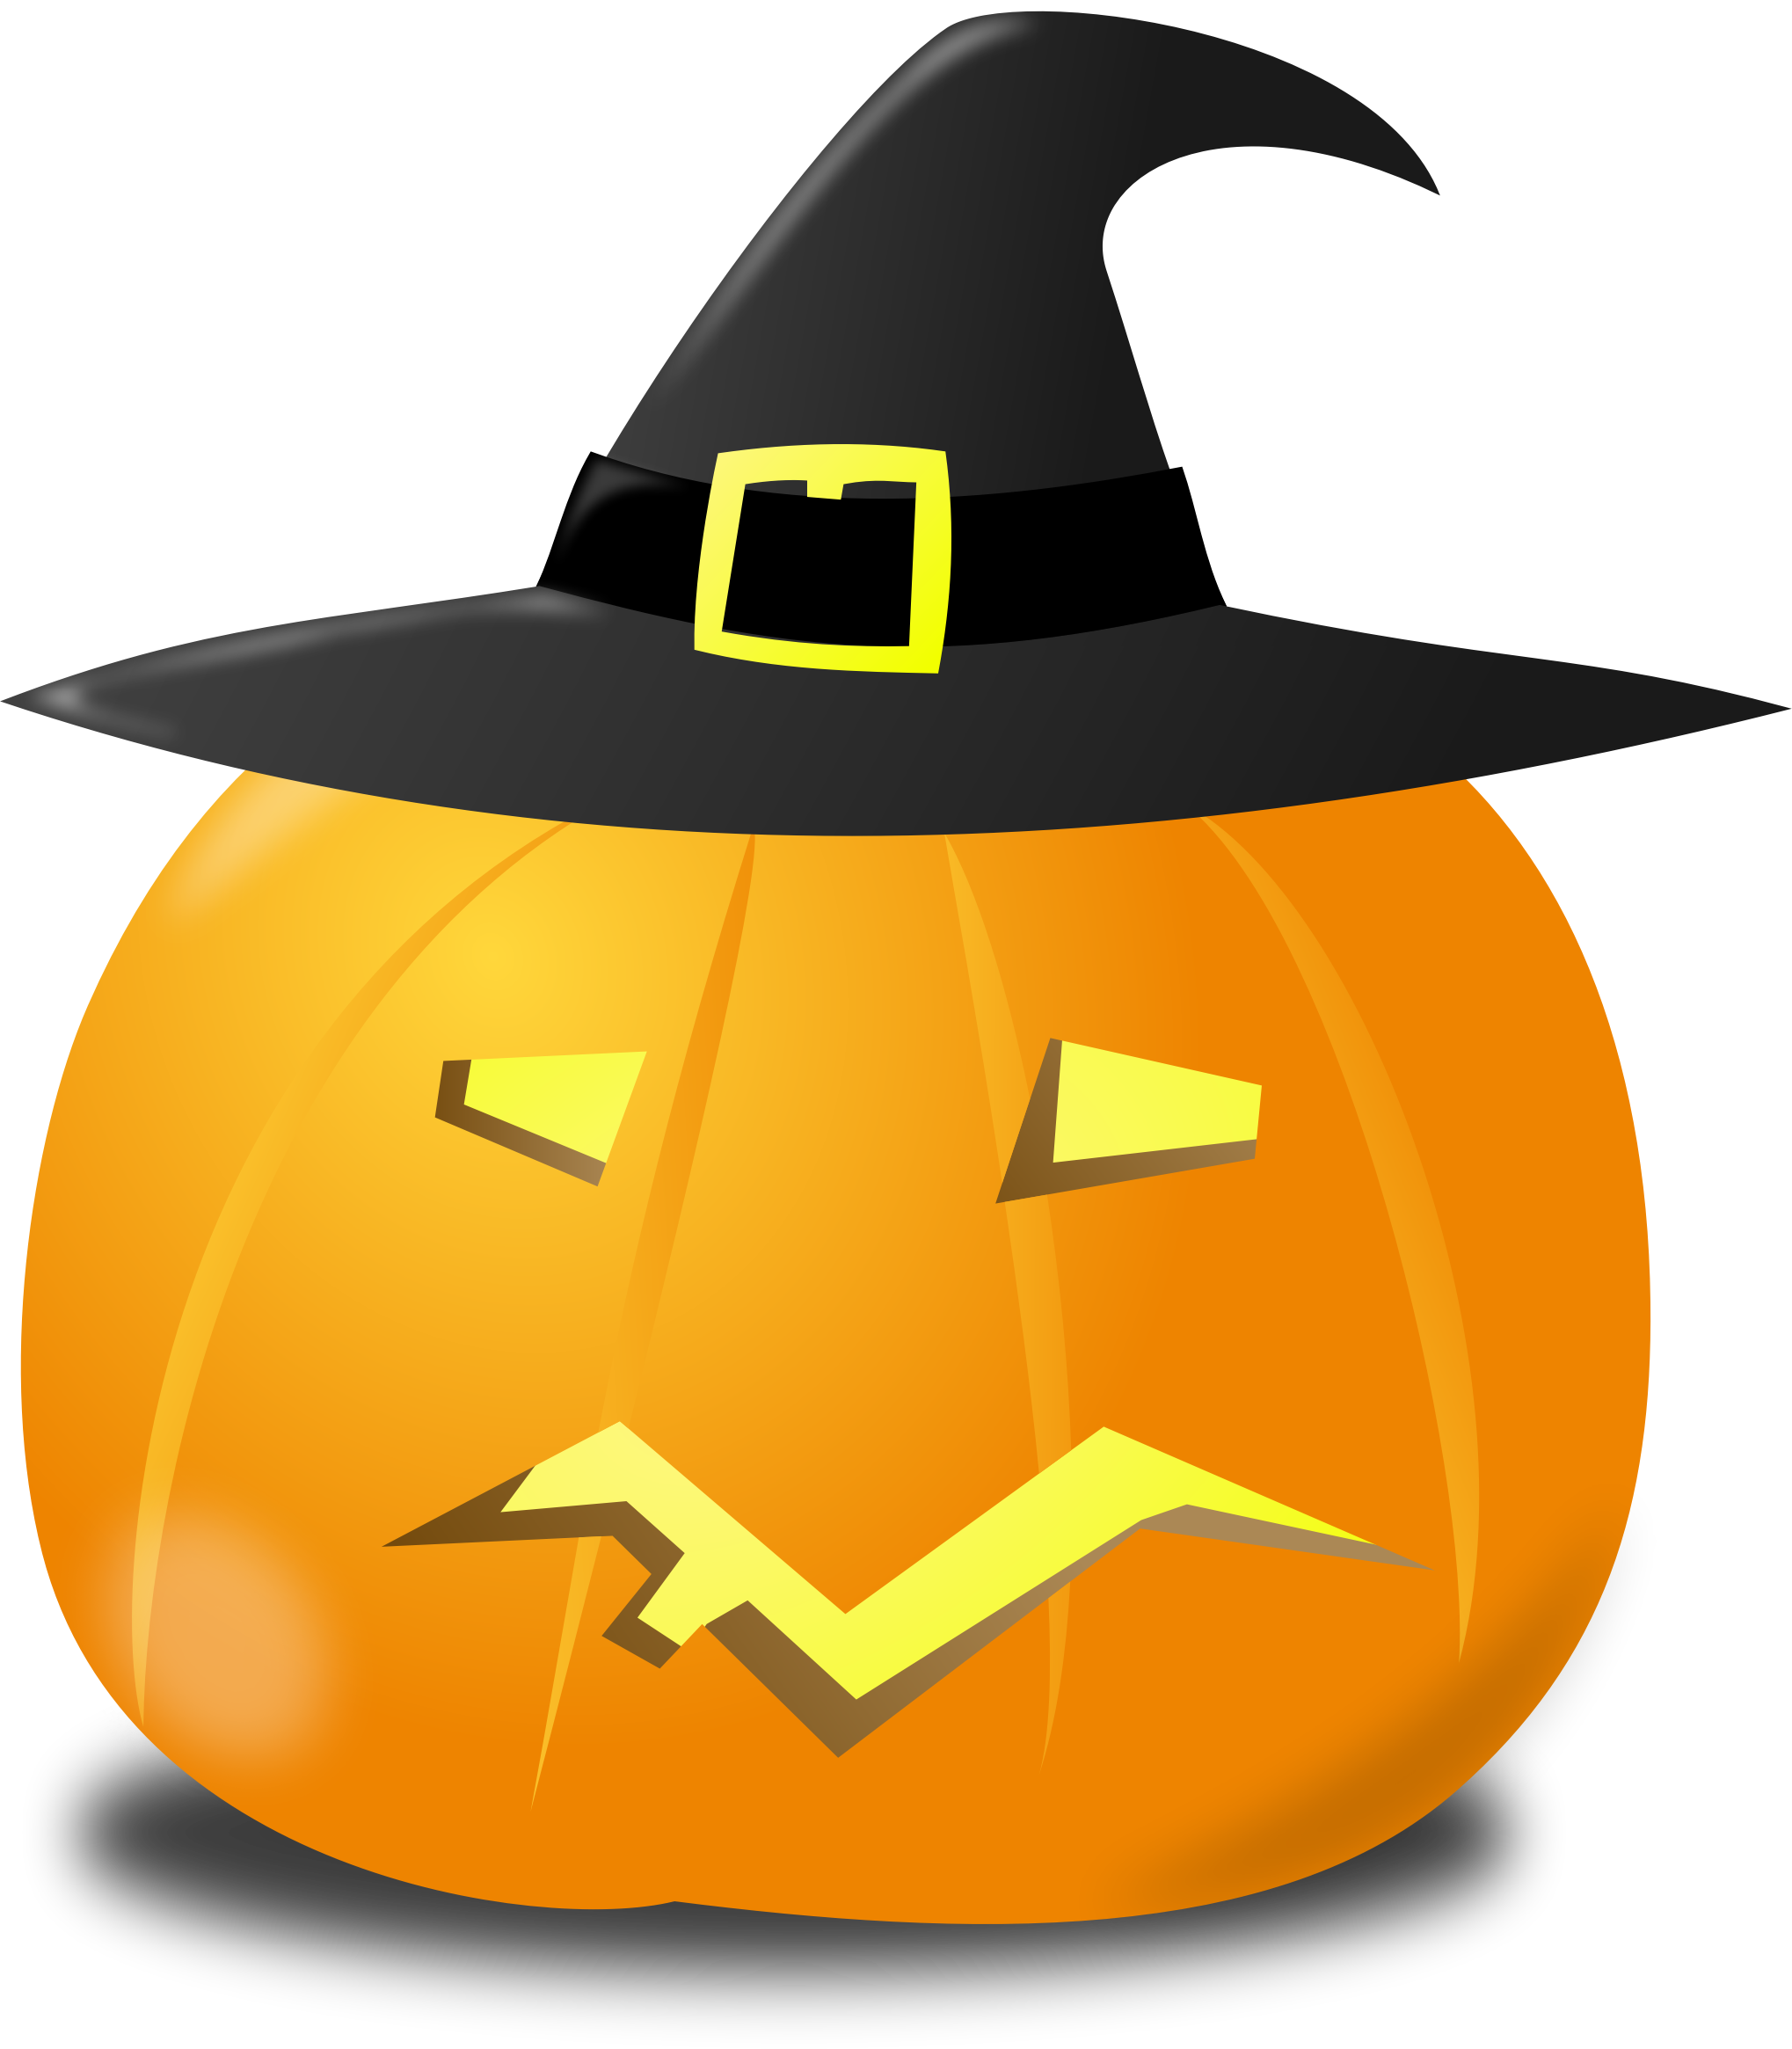 Pumpkins vector colored. Wtich pumpkin icons png